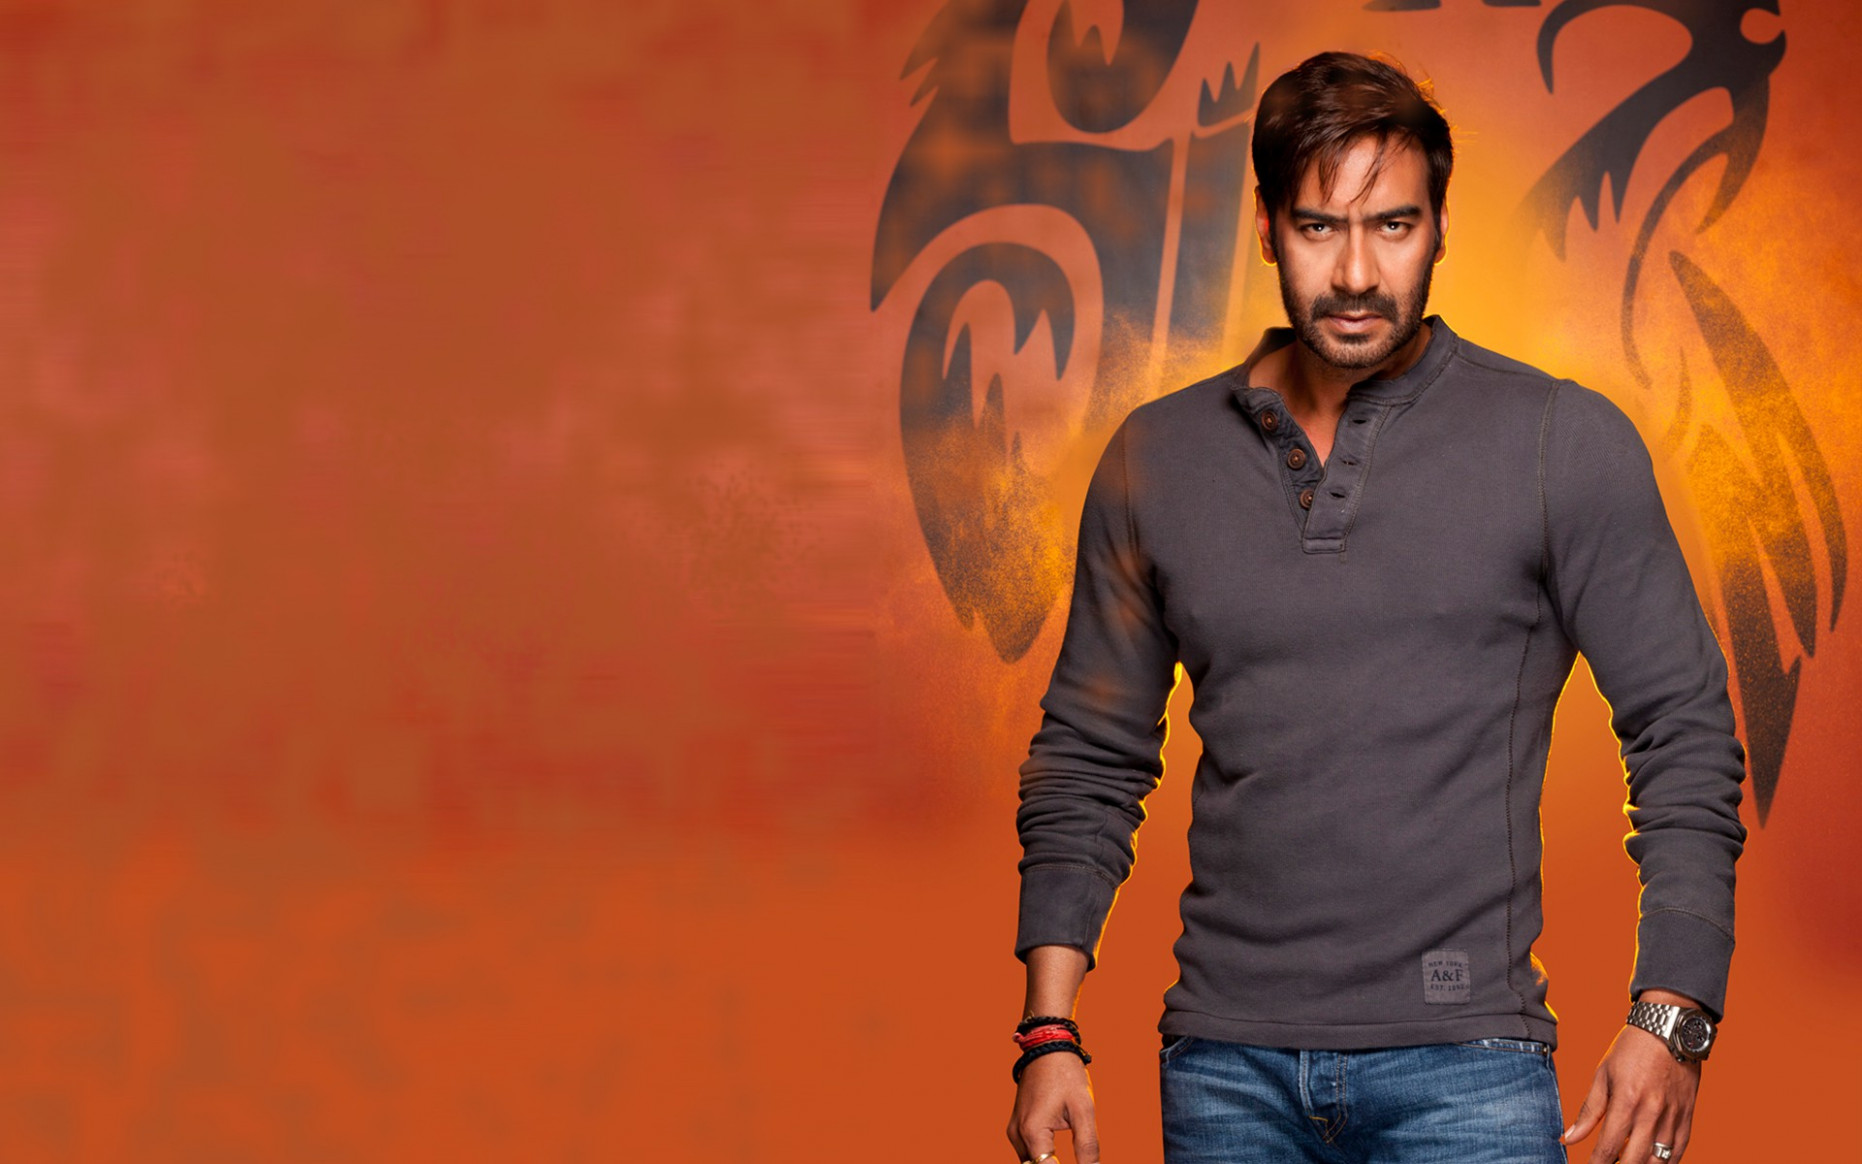 Ajay Devgn Upcoming Movies 2018, 2019